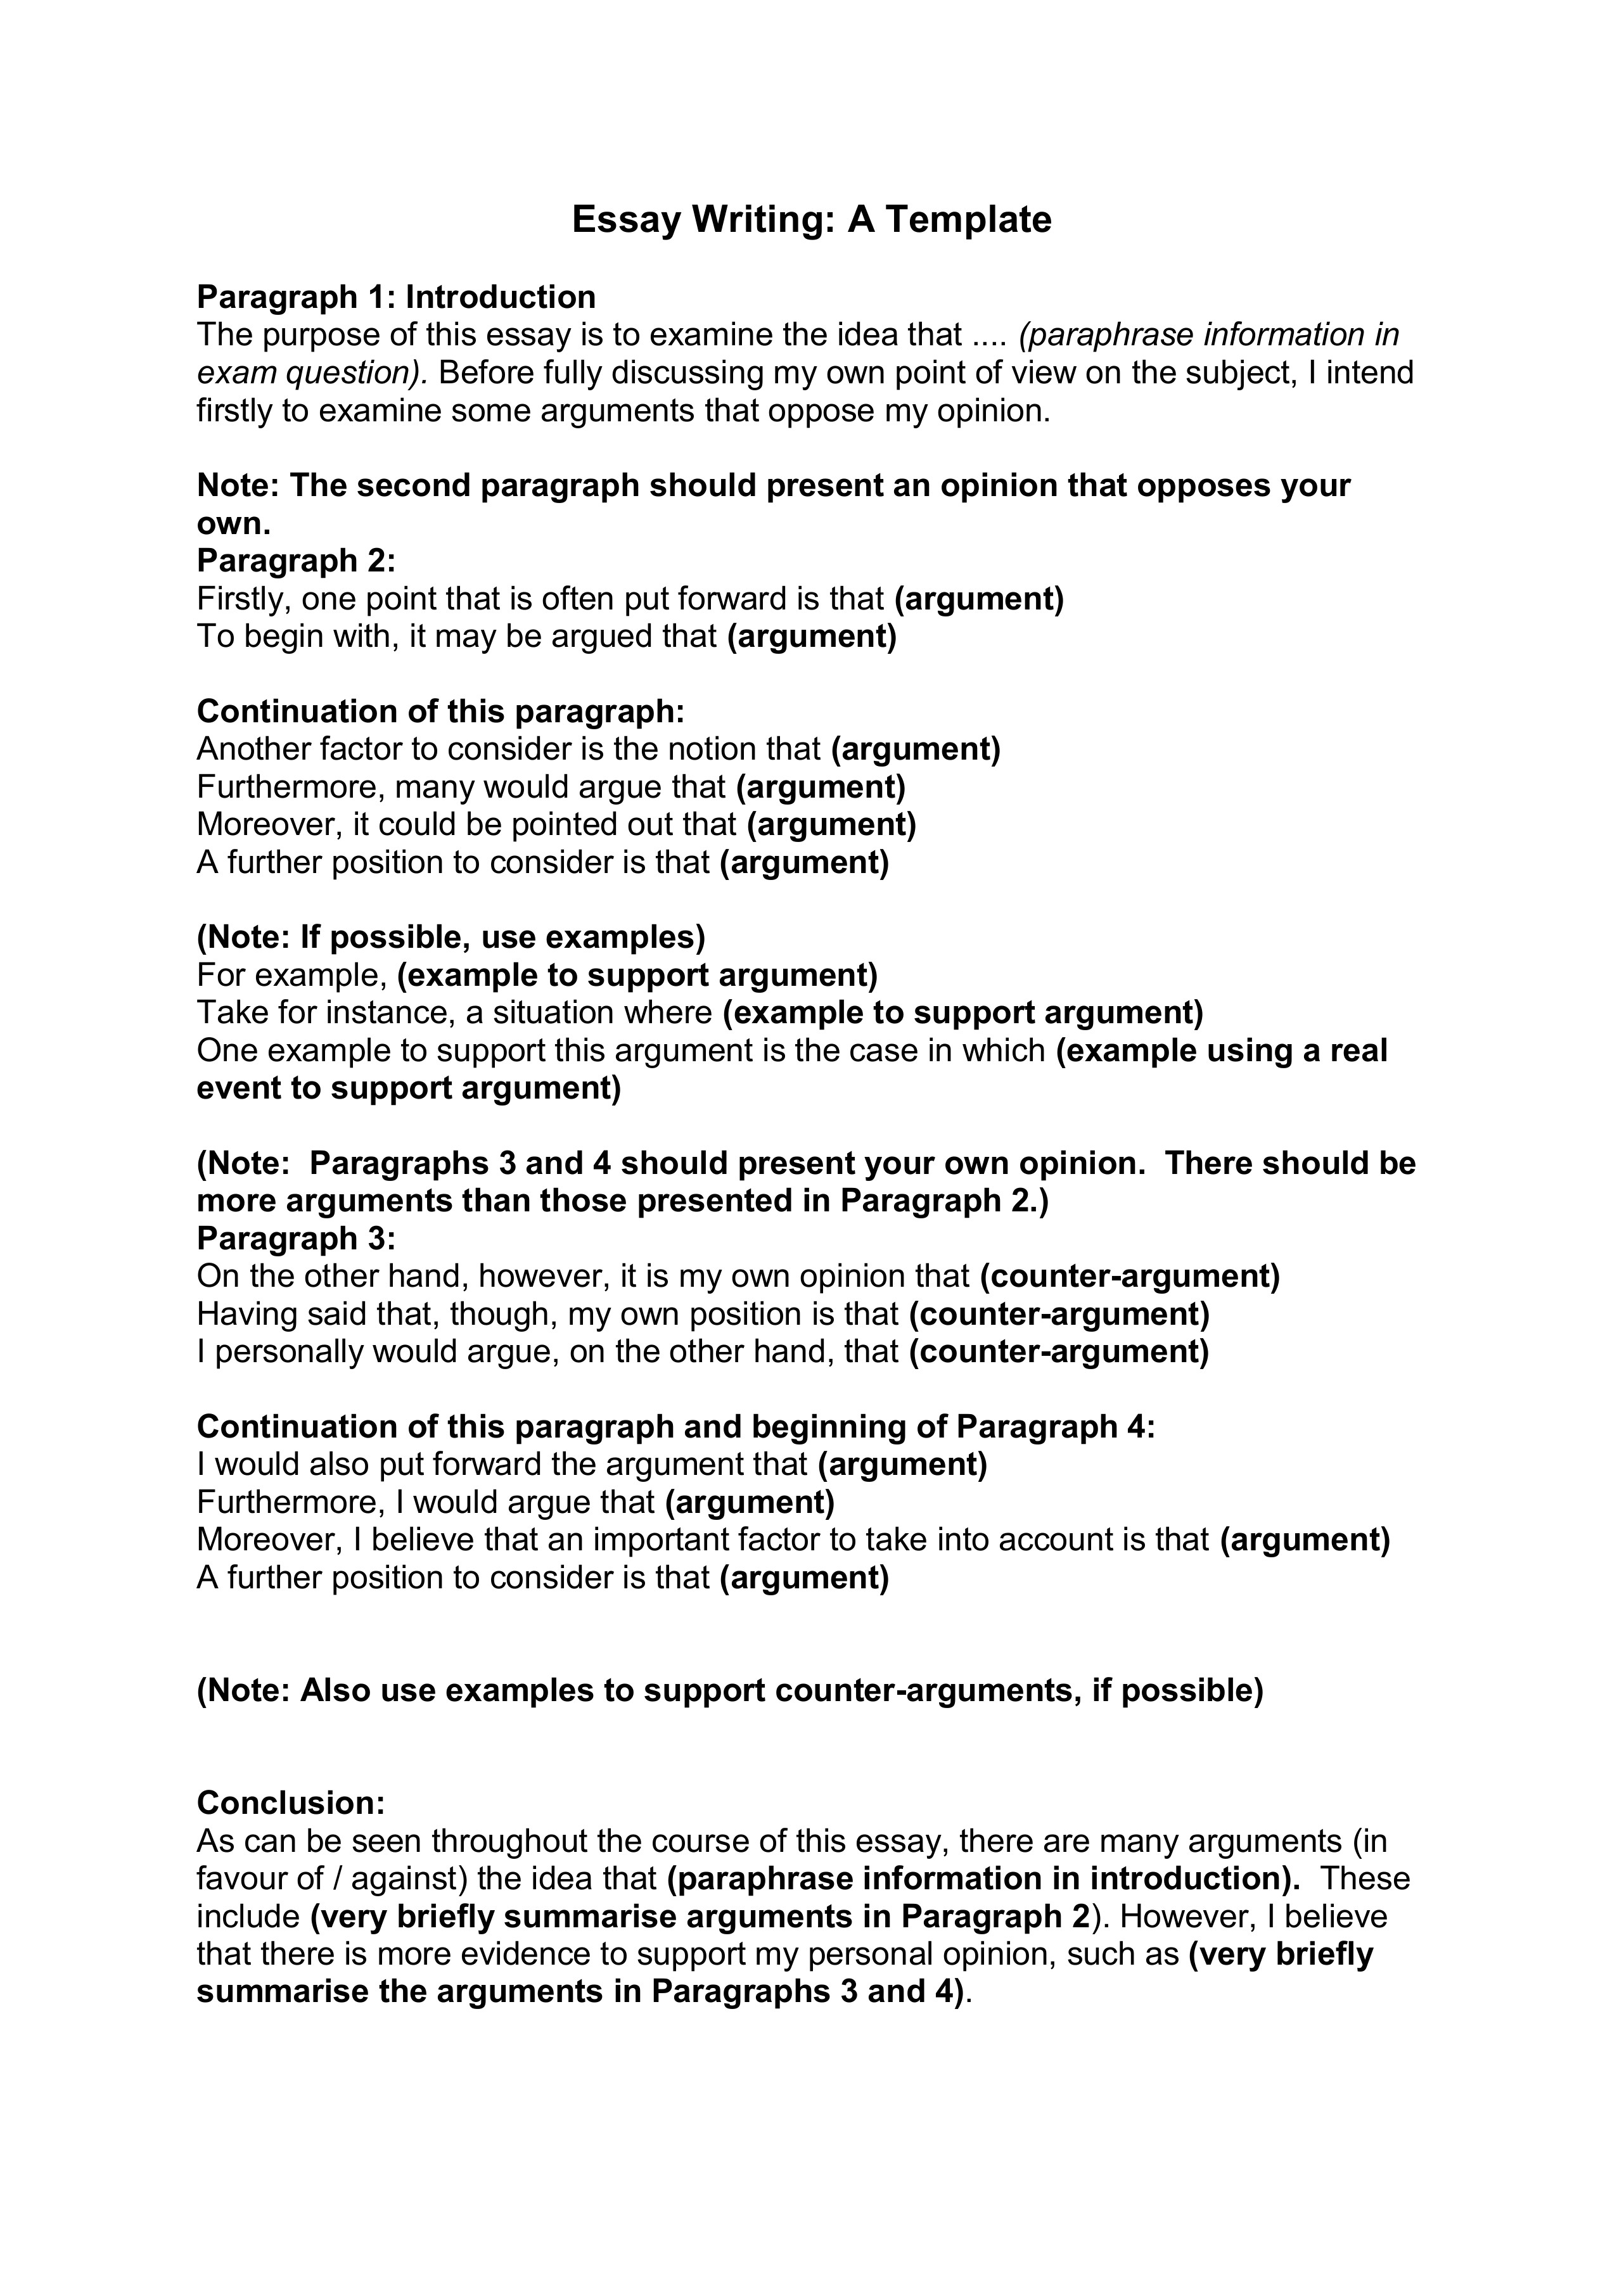 021 Order Of Research Paper Essay Writing Template For Part Breathtaking Chronological Sections In Headings A Full